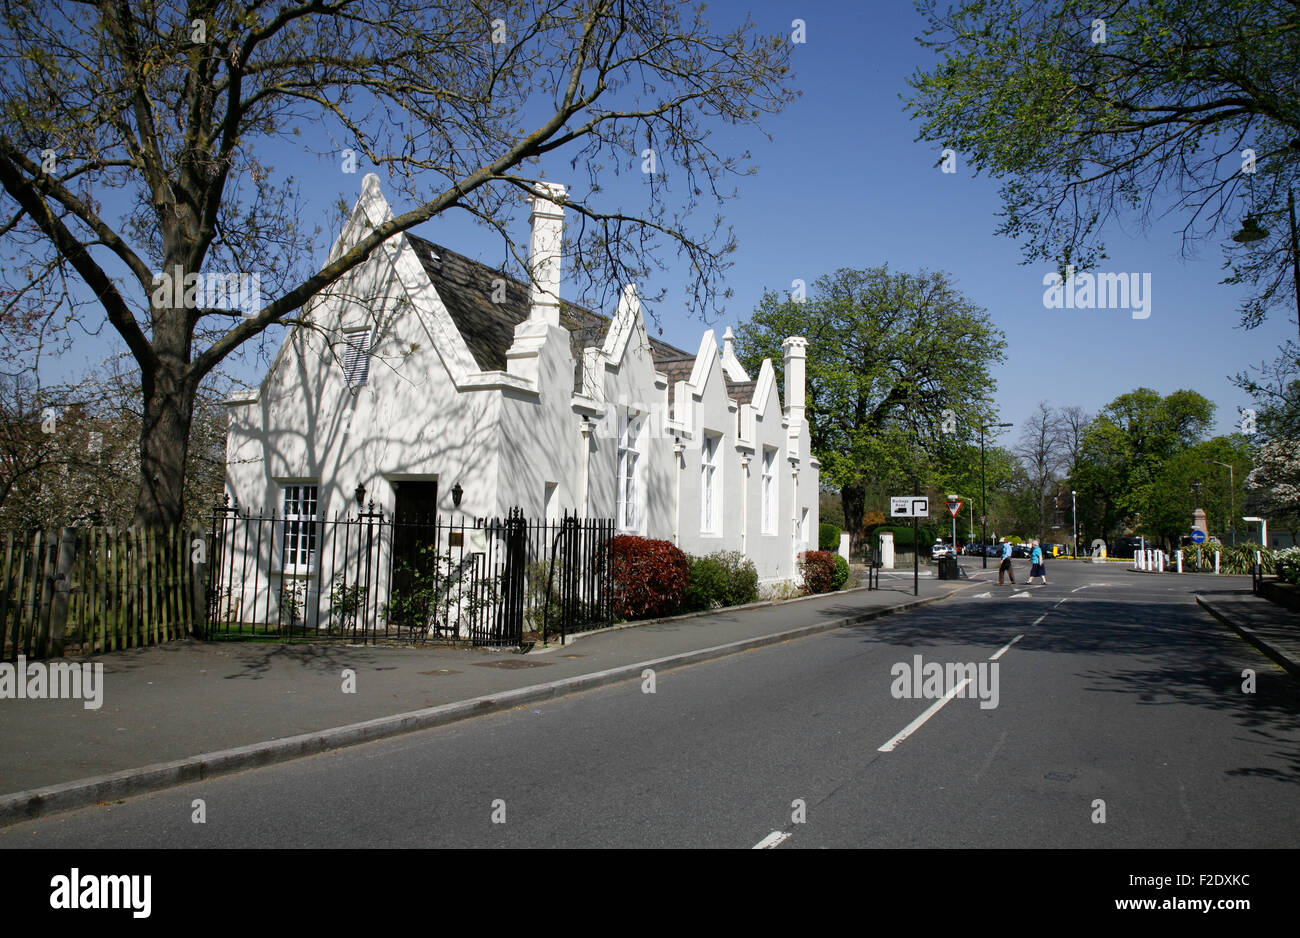 Old Grammar School, Dulwich Village, London, UK - Stock Image